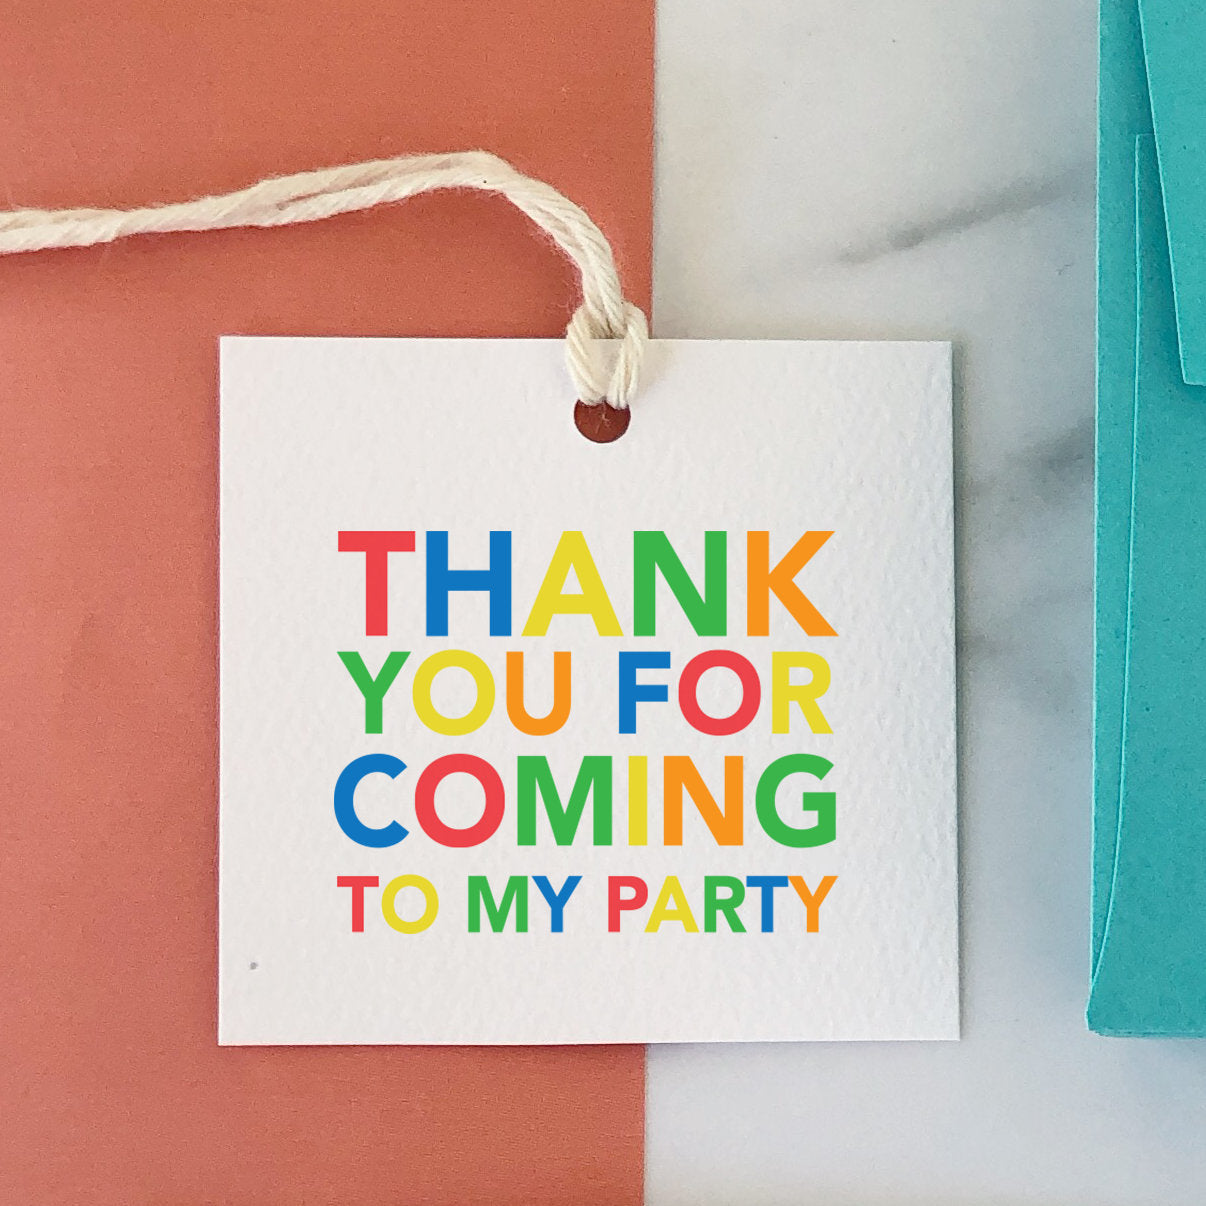 Thank You For Coming To My Party Primary Tag, Party Favor Gift Tag, Birthday Tag, Colorful, Birthday Favor, Square Tag, Striped Back 003ETS - Joy Creative Shop